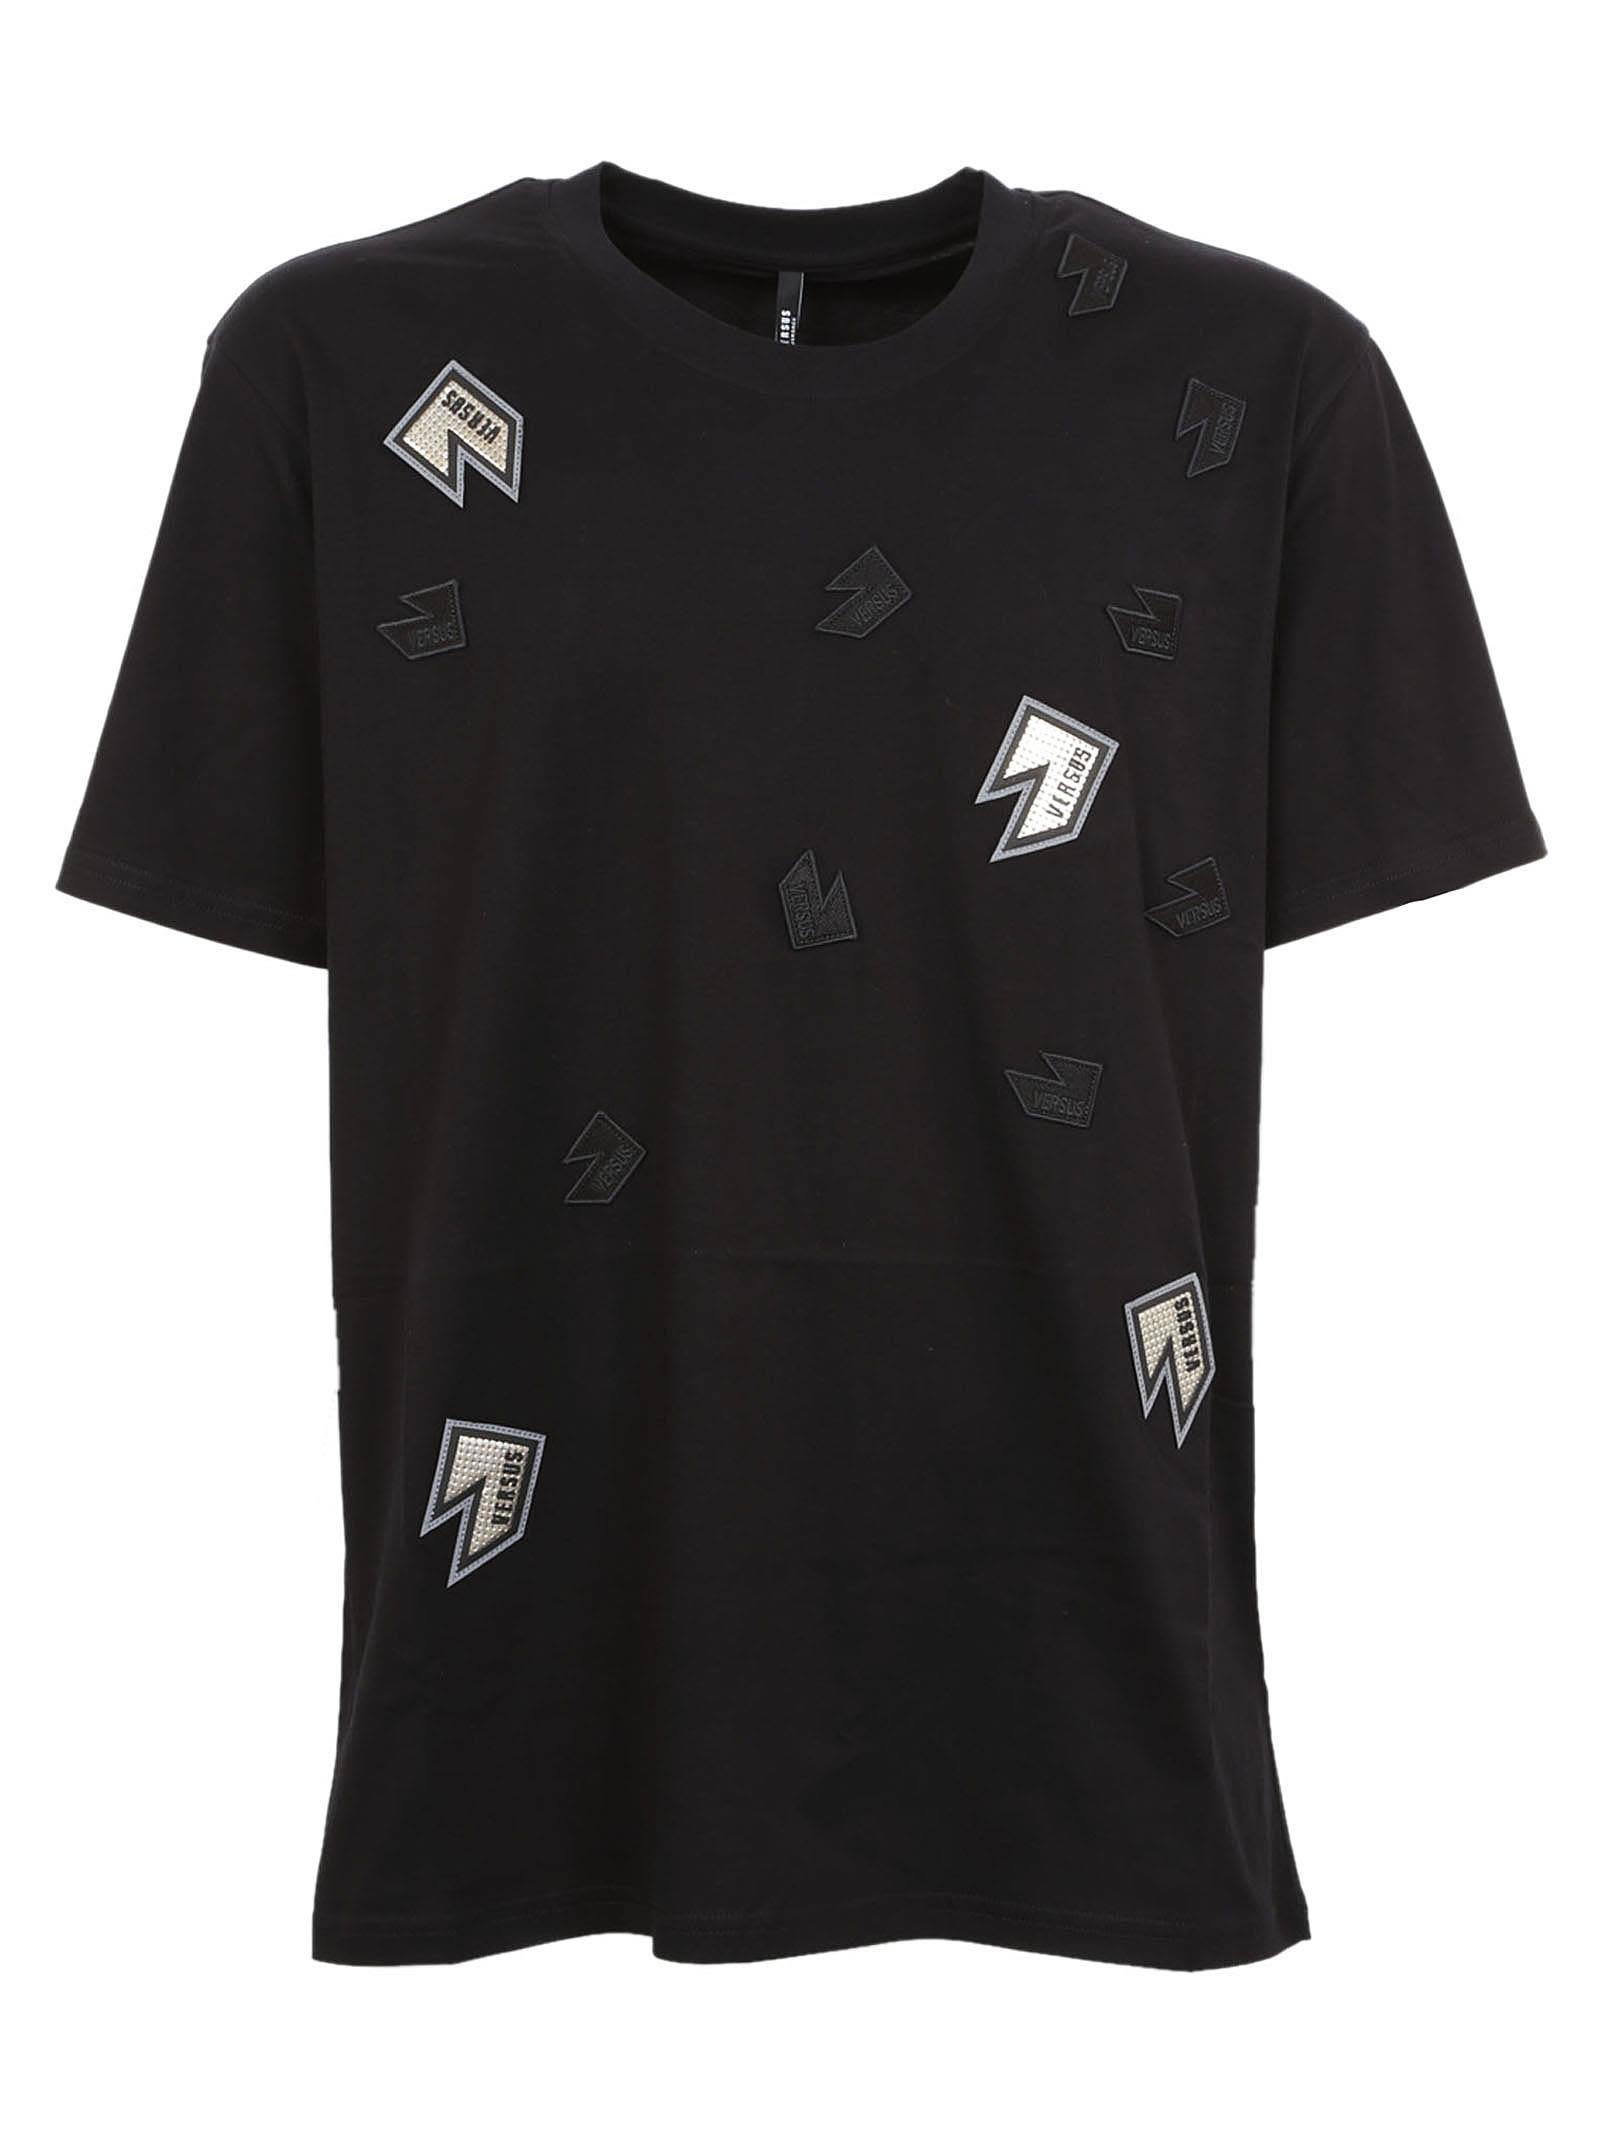 Versus Patches T-shirt